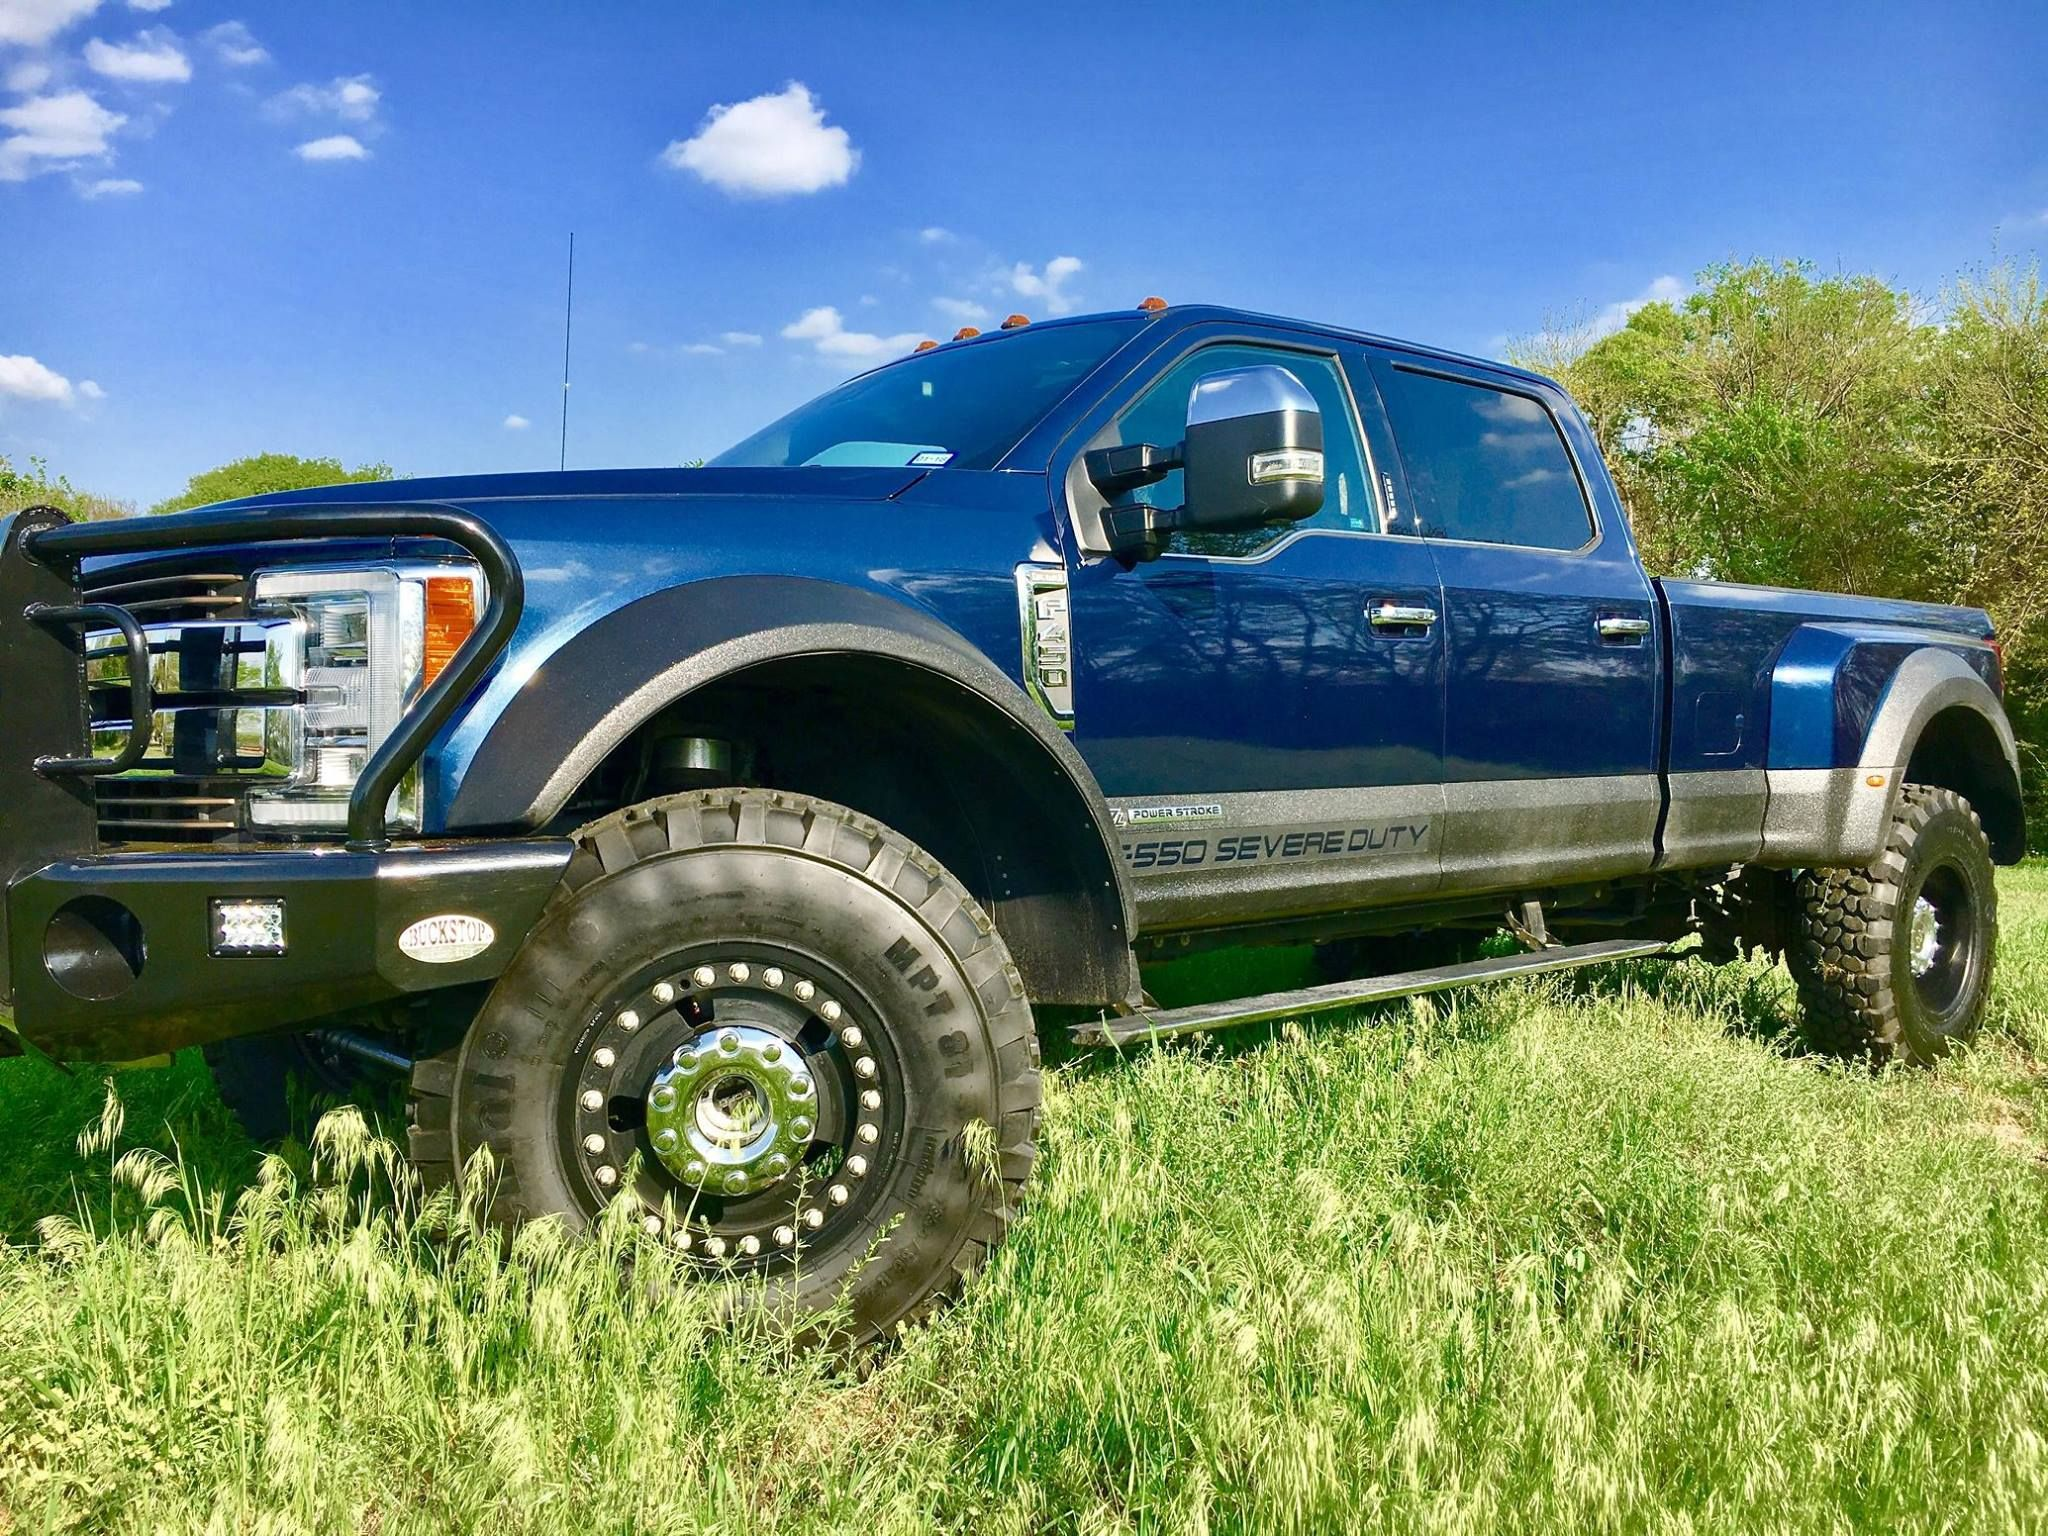 F550 severe duty trucks are built rock solid